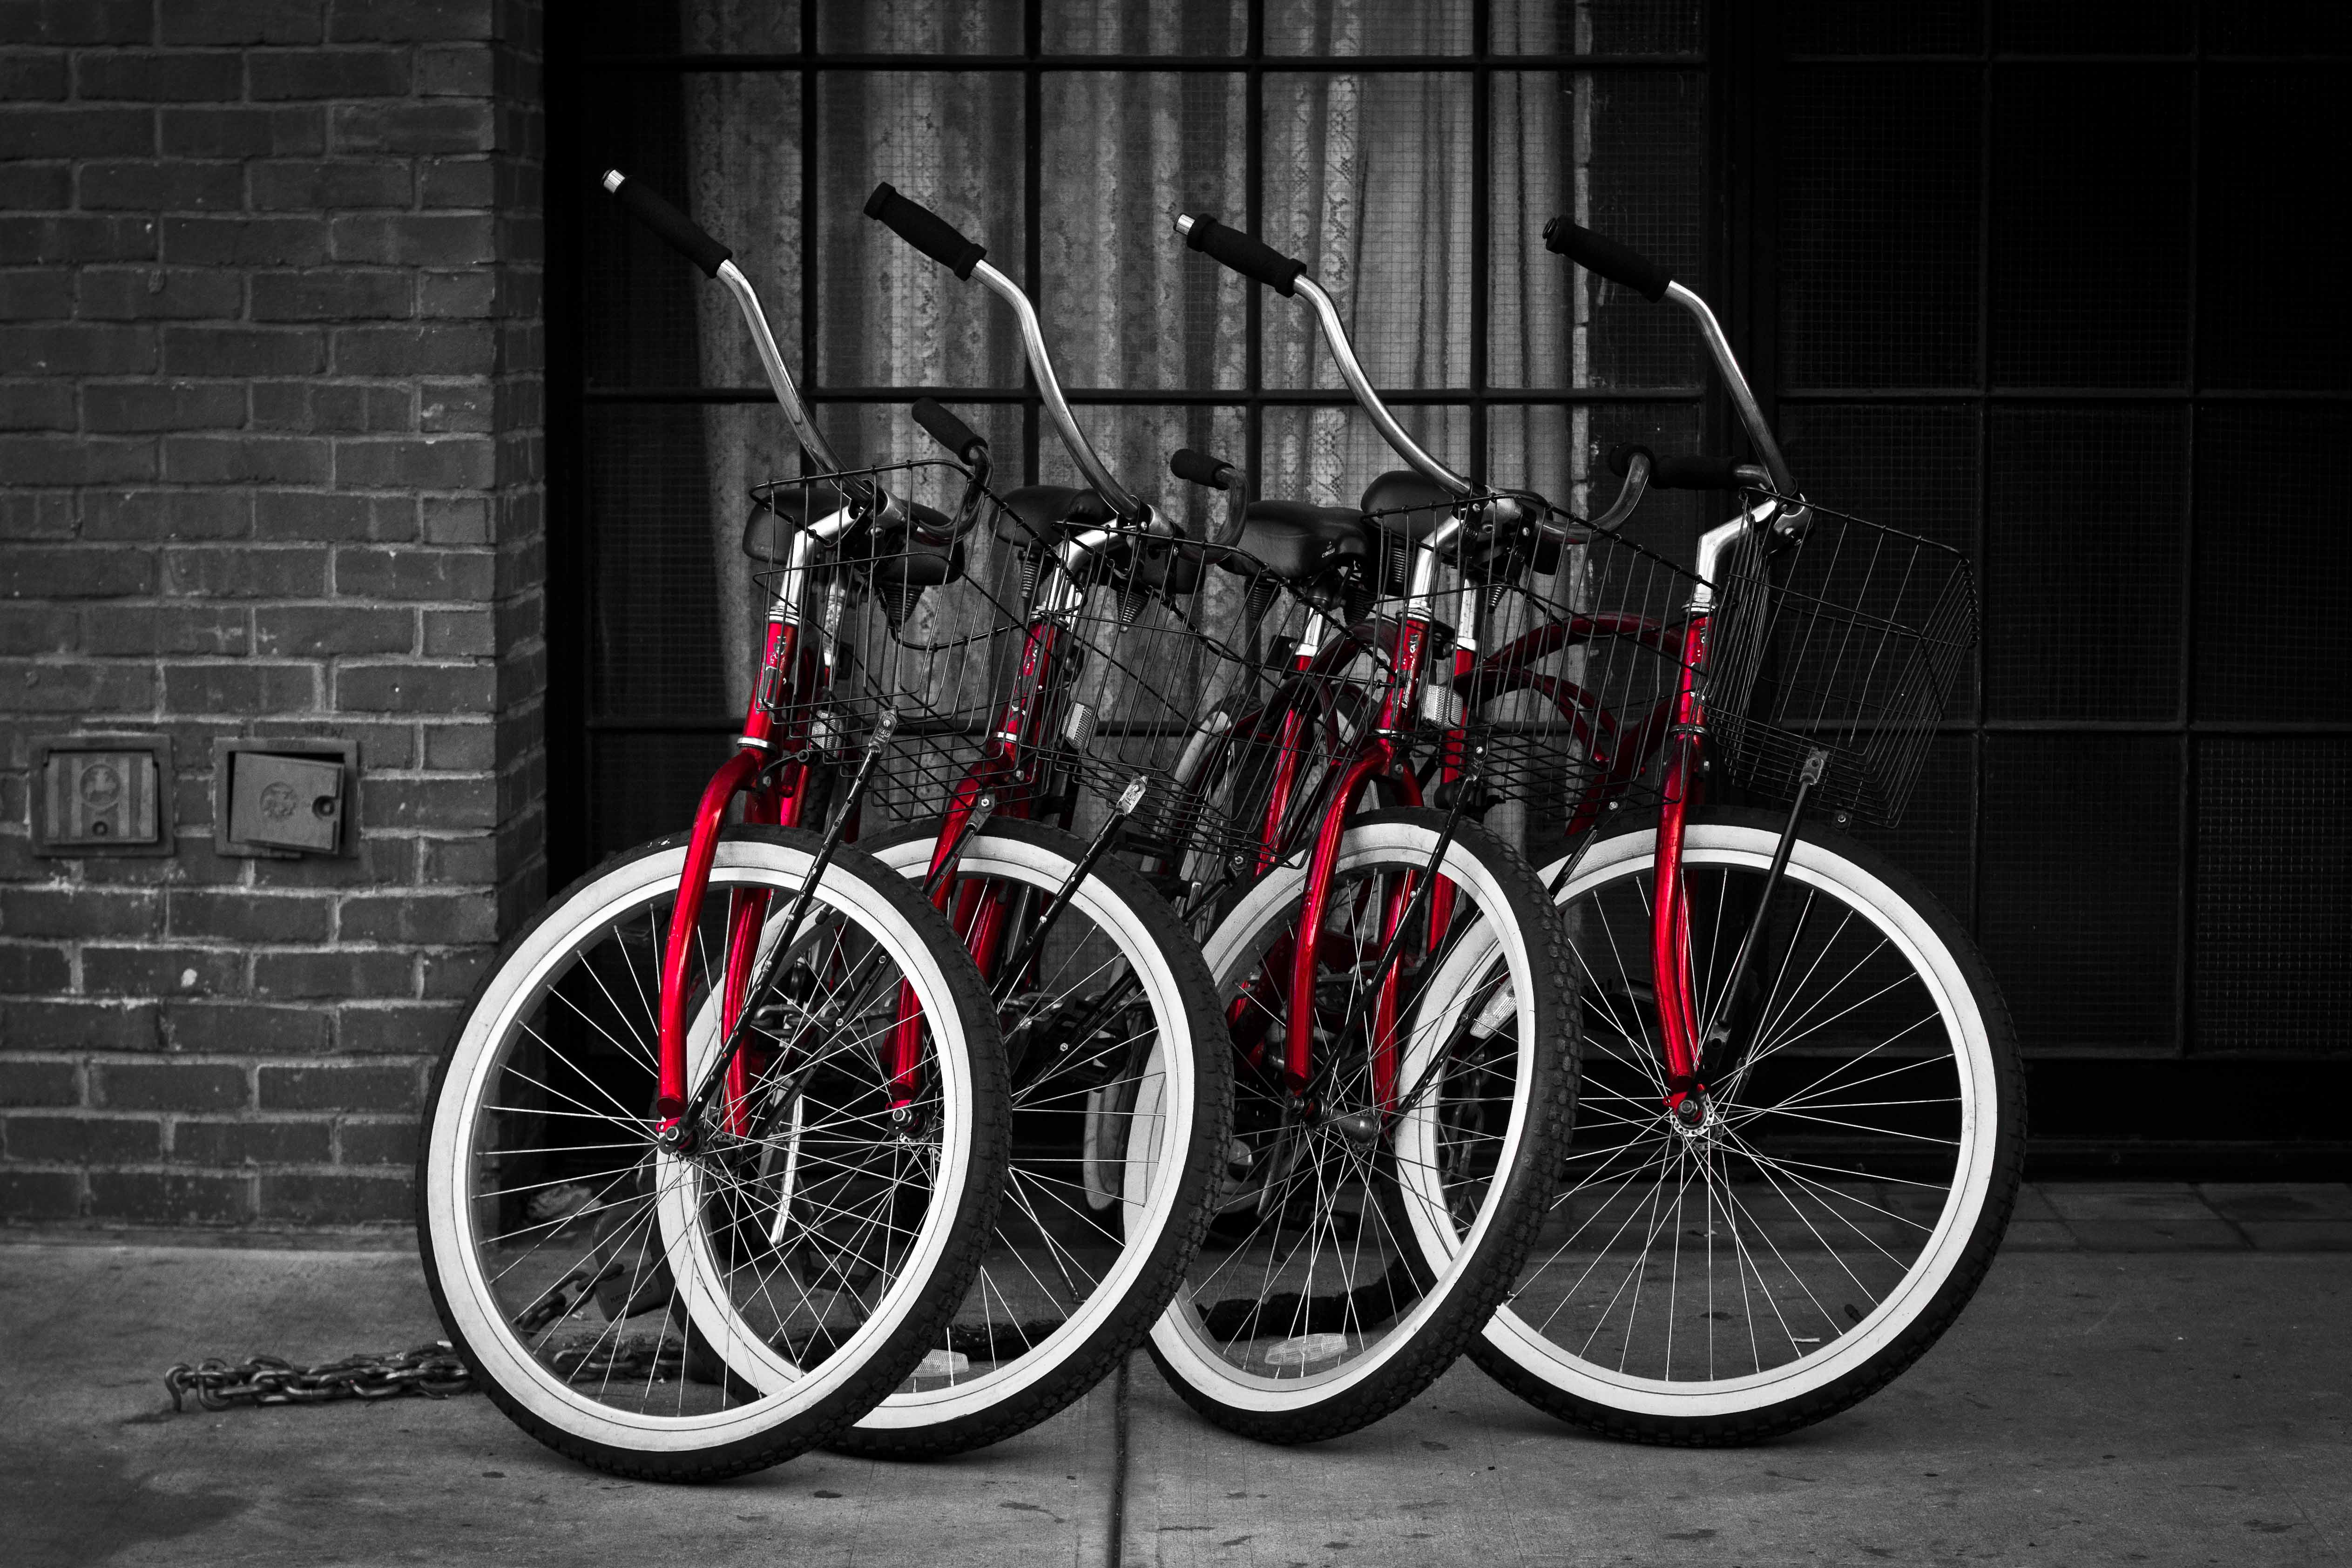 319-red-bicycles